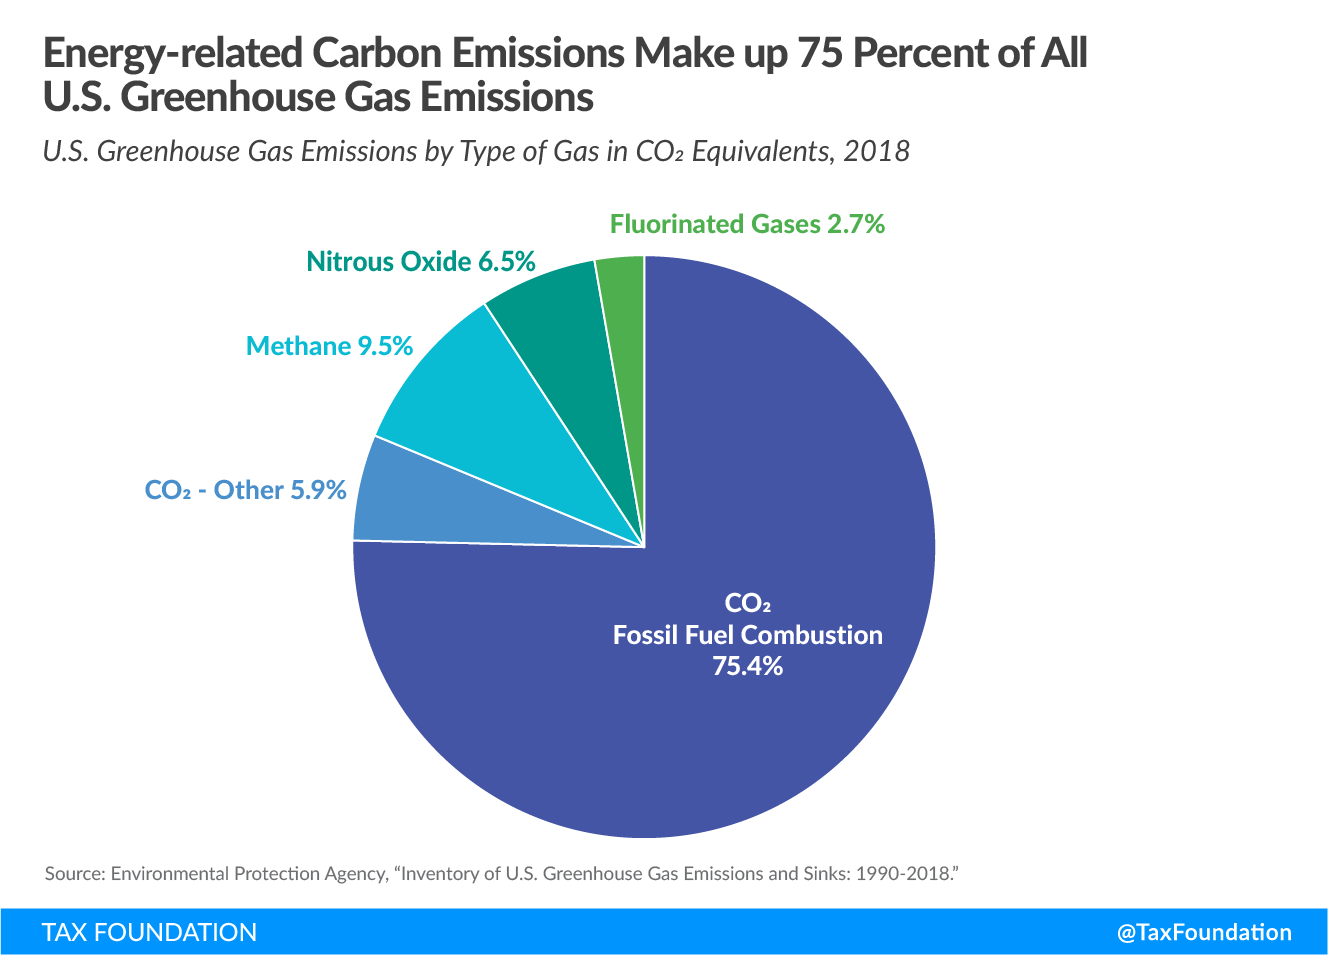 Energy-related carbon emissions make up 75 percent of all US greenhouse gas emissions